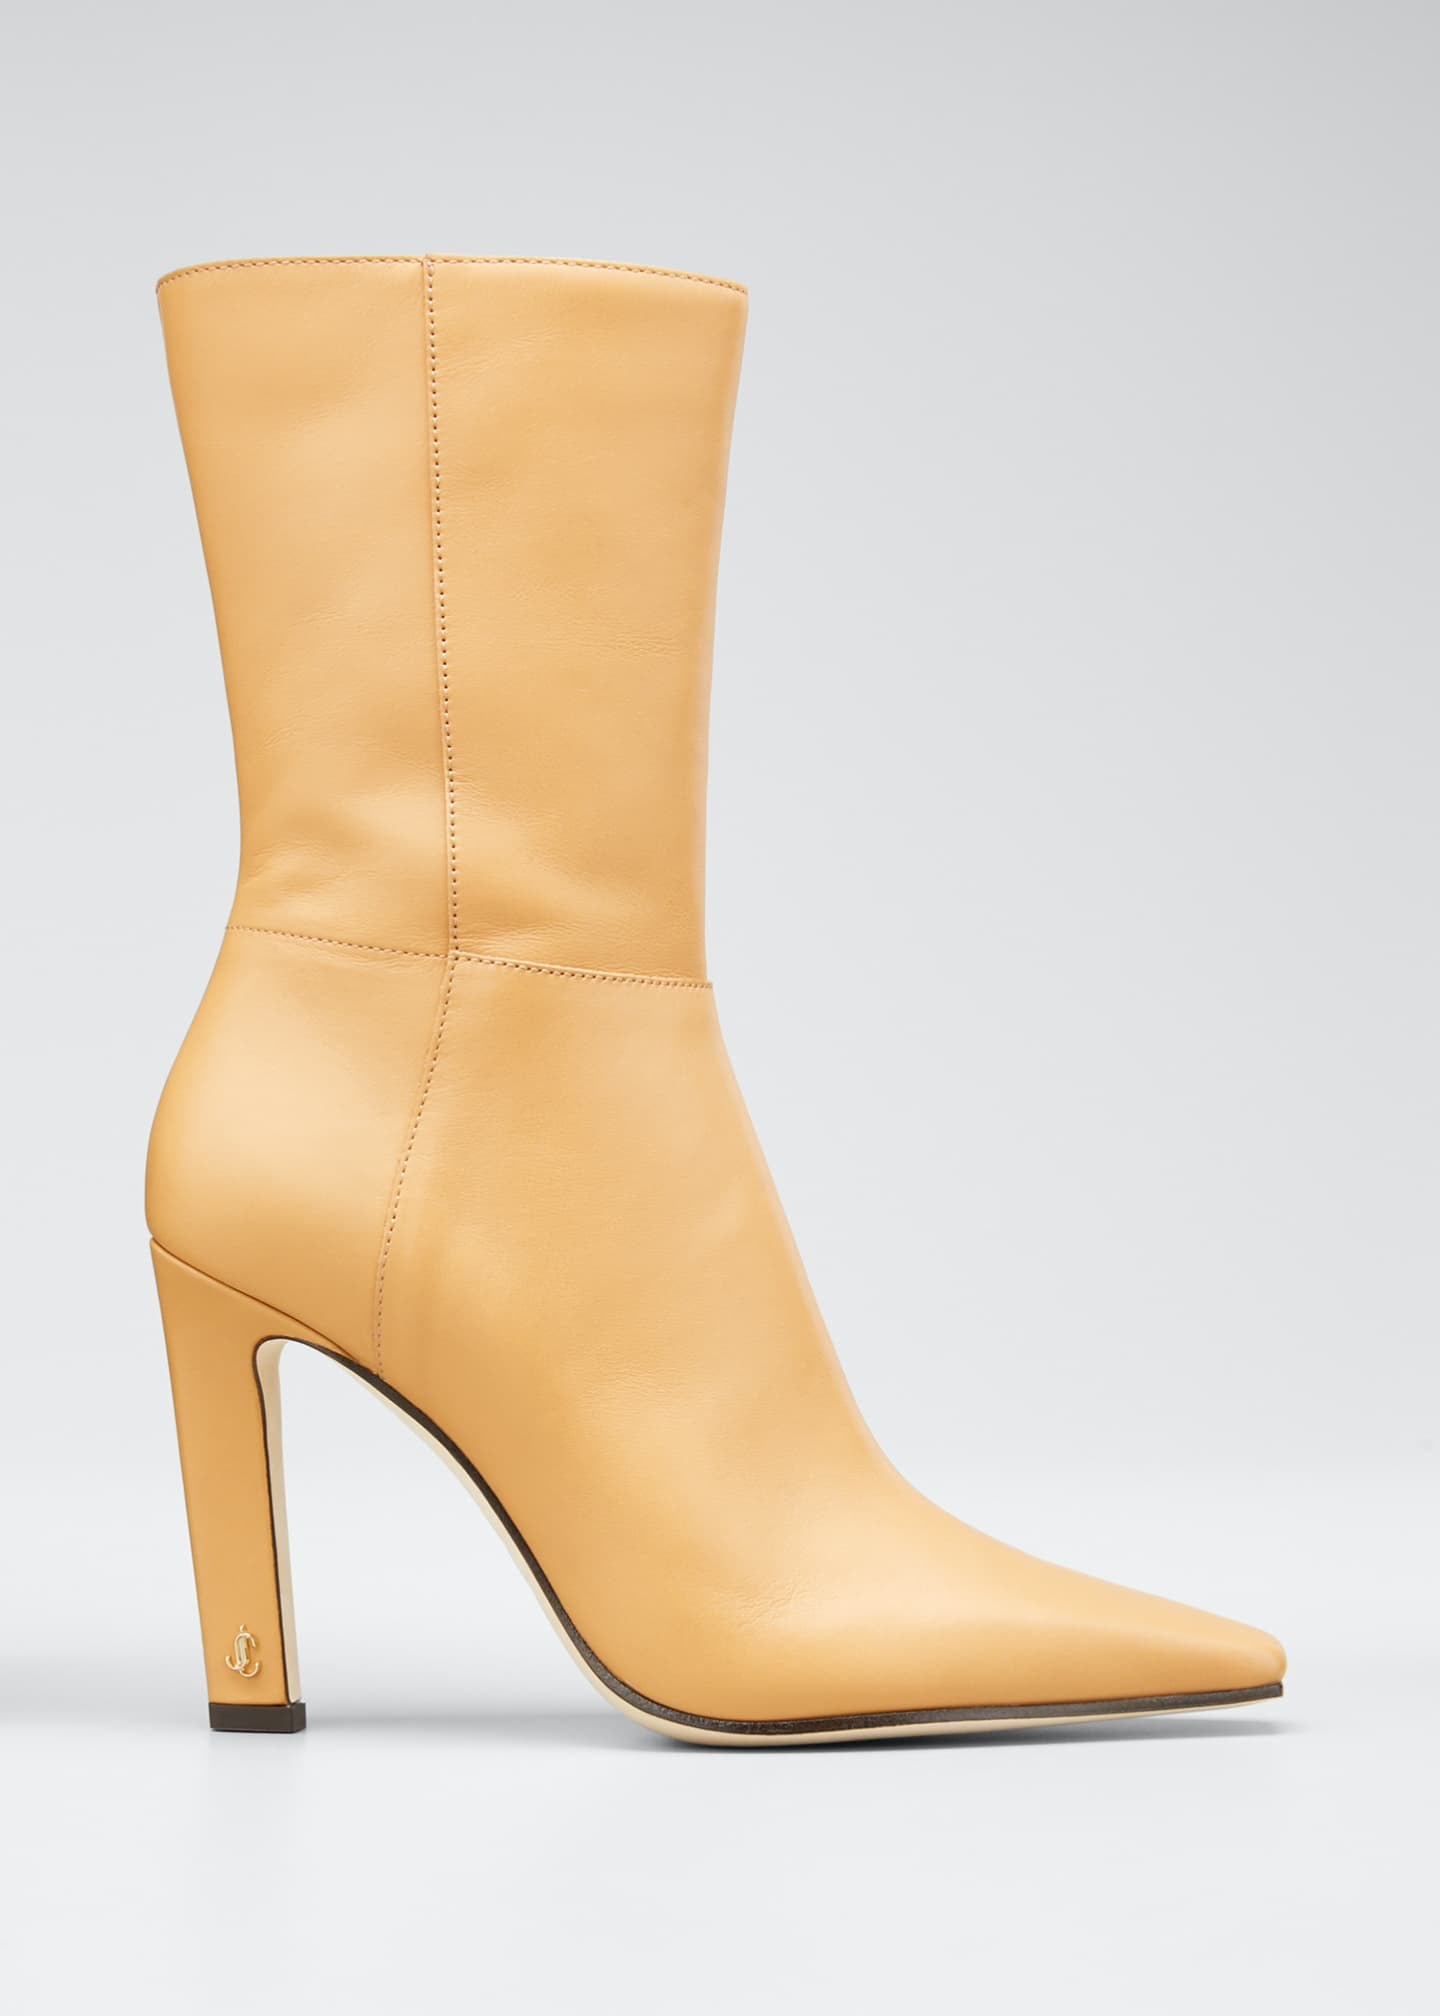 Image 1 of 5: Merche Soft Leather High-Heel Boots